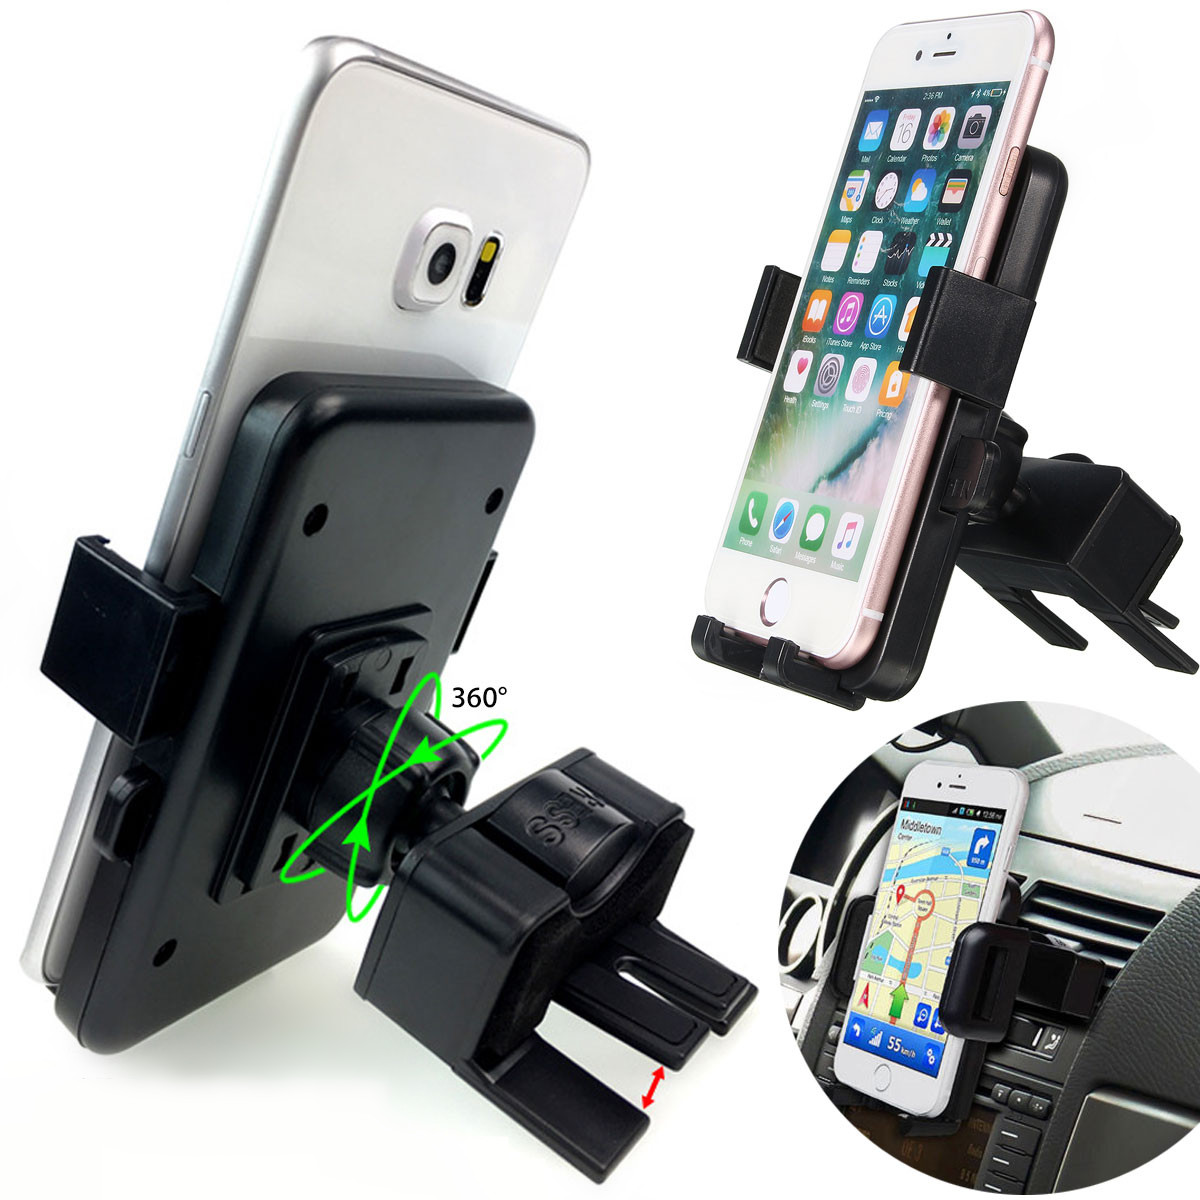 Rock universal car air vent mount holder for smartphone 6